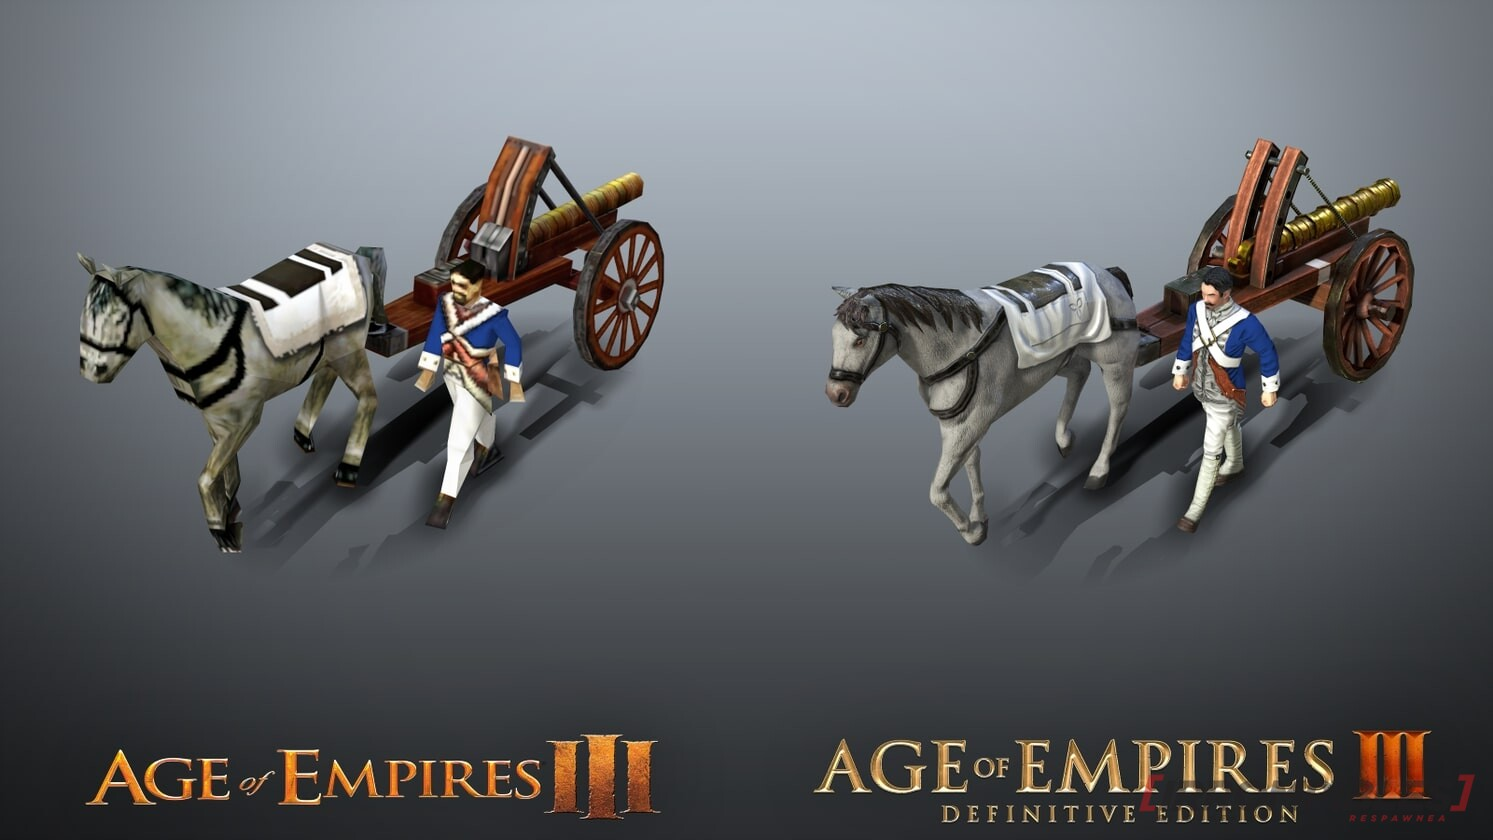 AGE OF EMPIRES III DEFINITIVE EDITION J